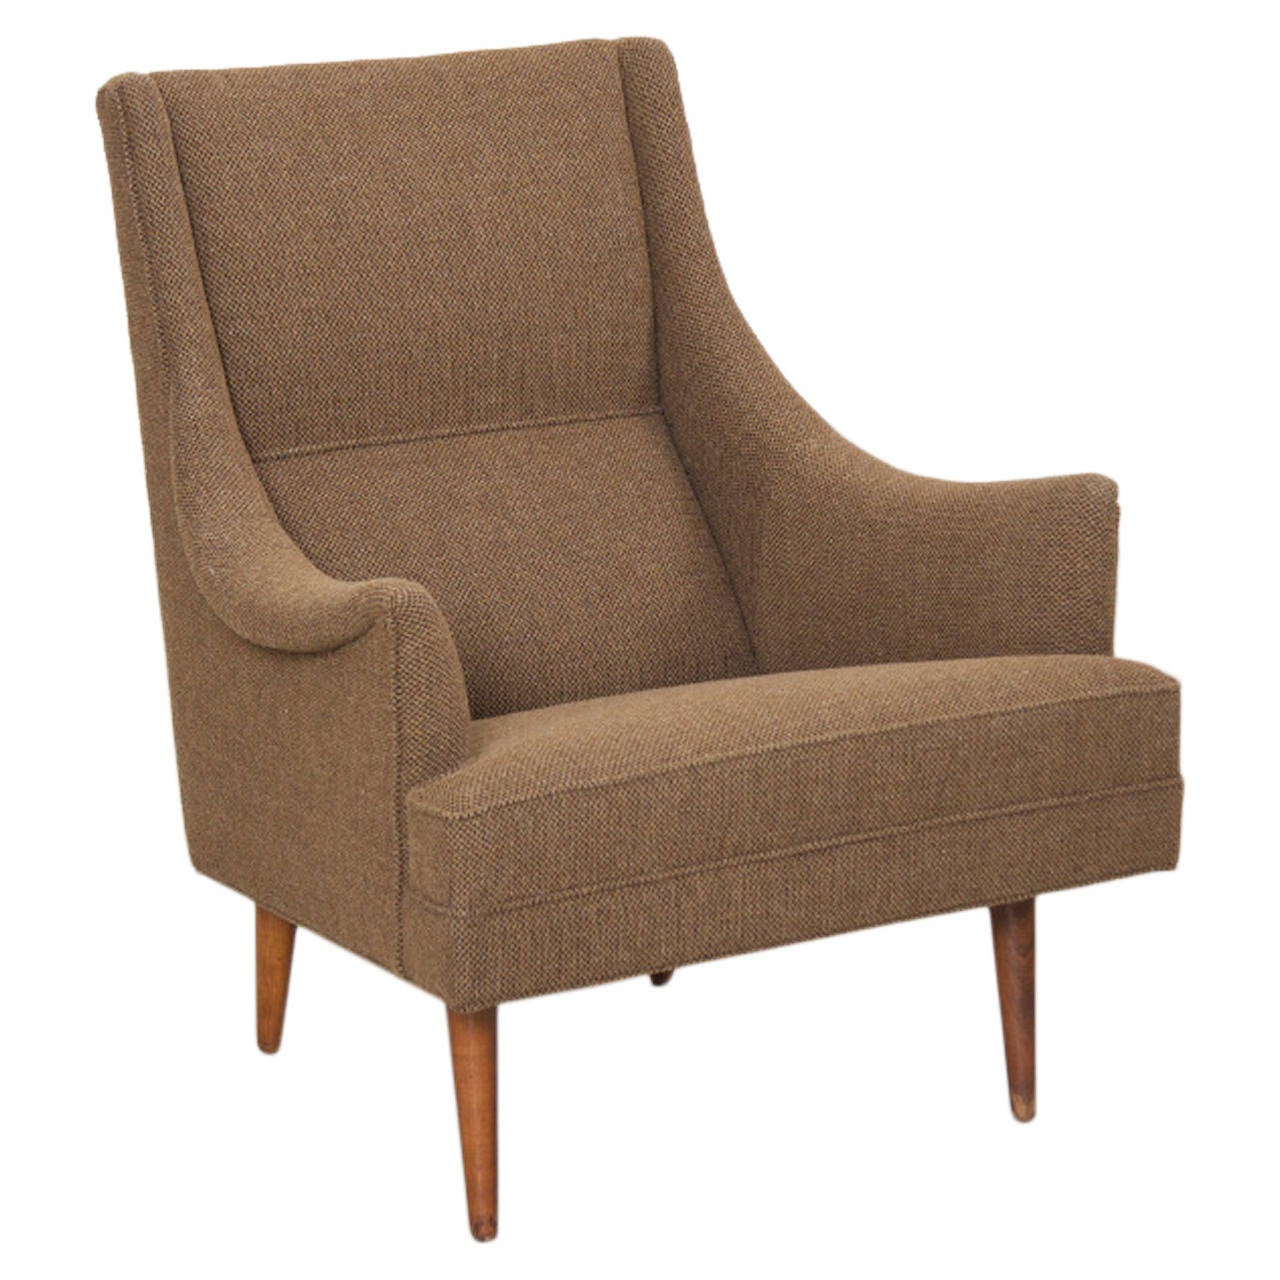 Milo Baughman Lounge Chair for Thayer Coggin at 1stdibs